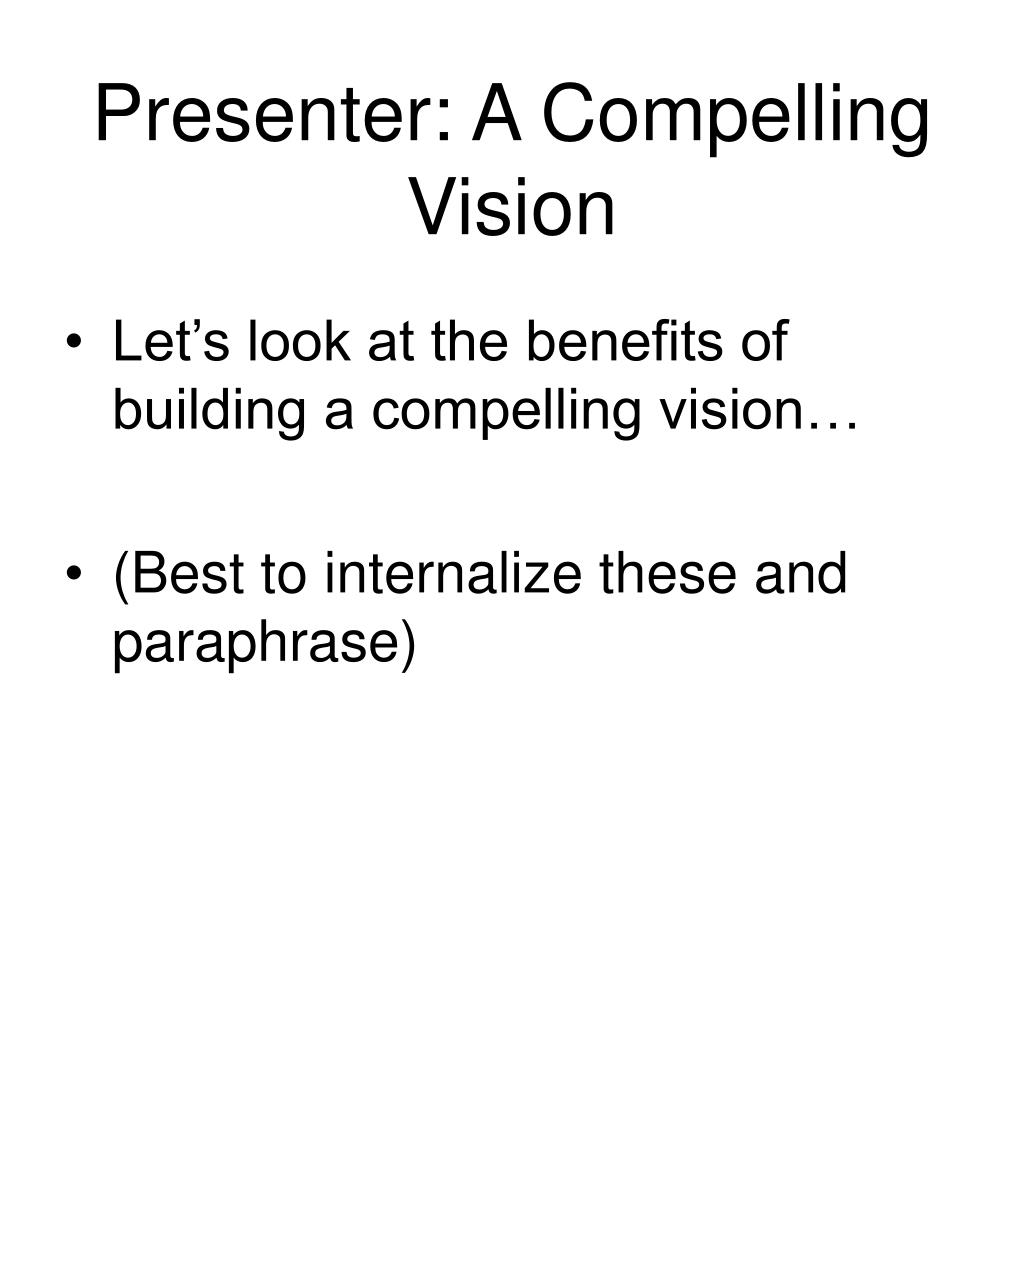 Presenter: A Compelling Vision